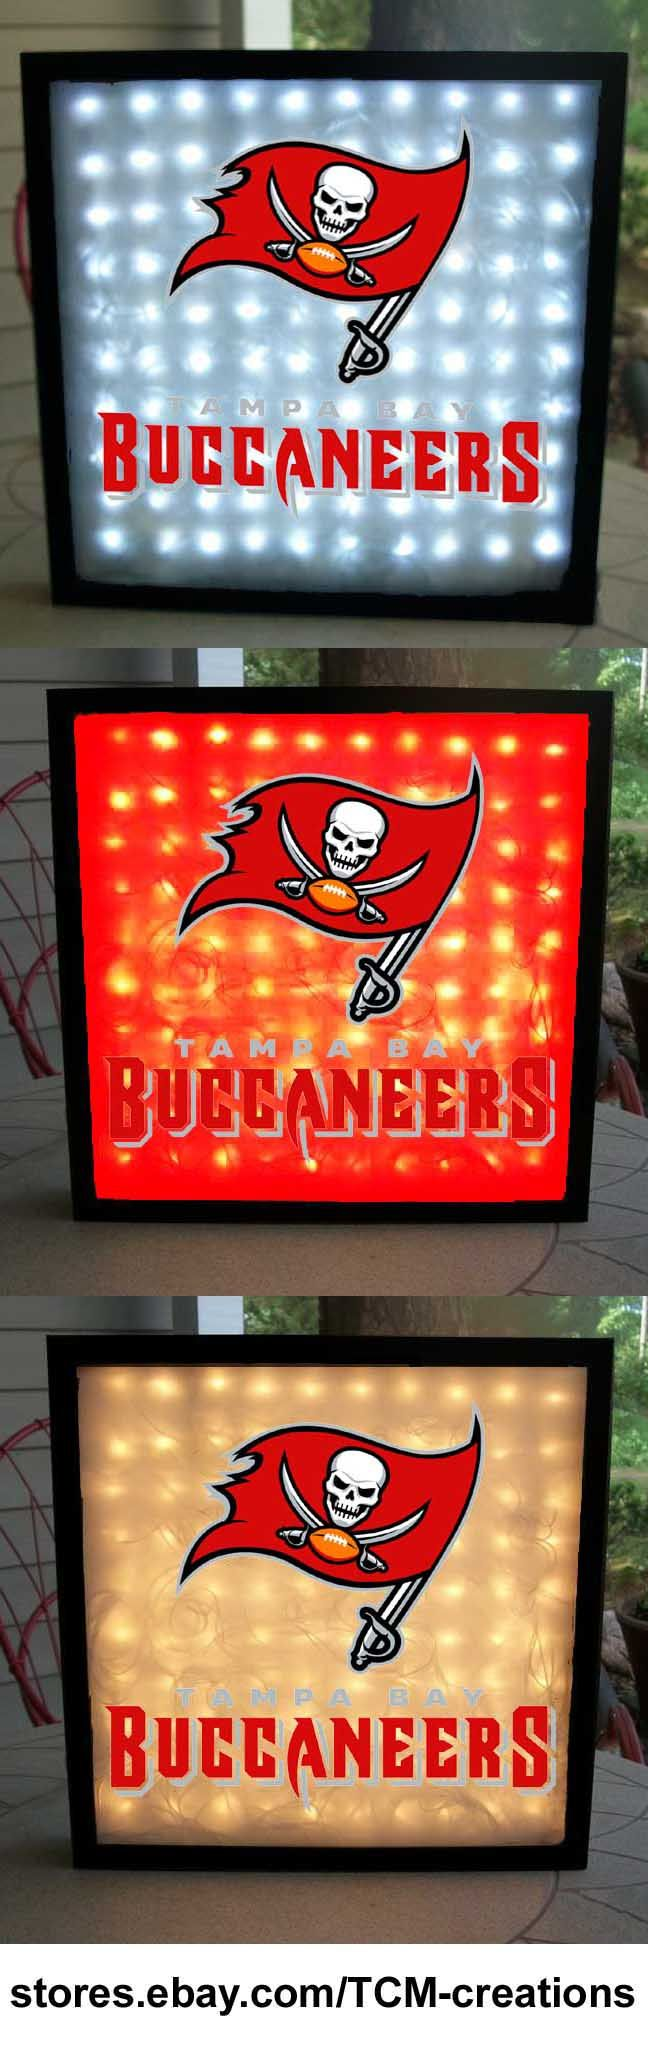 Tampa Bay Buccaneers shadow boxes with LED lighting.  NFL, National Football, League.